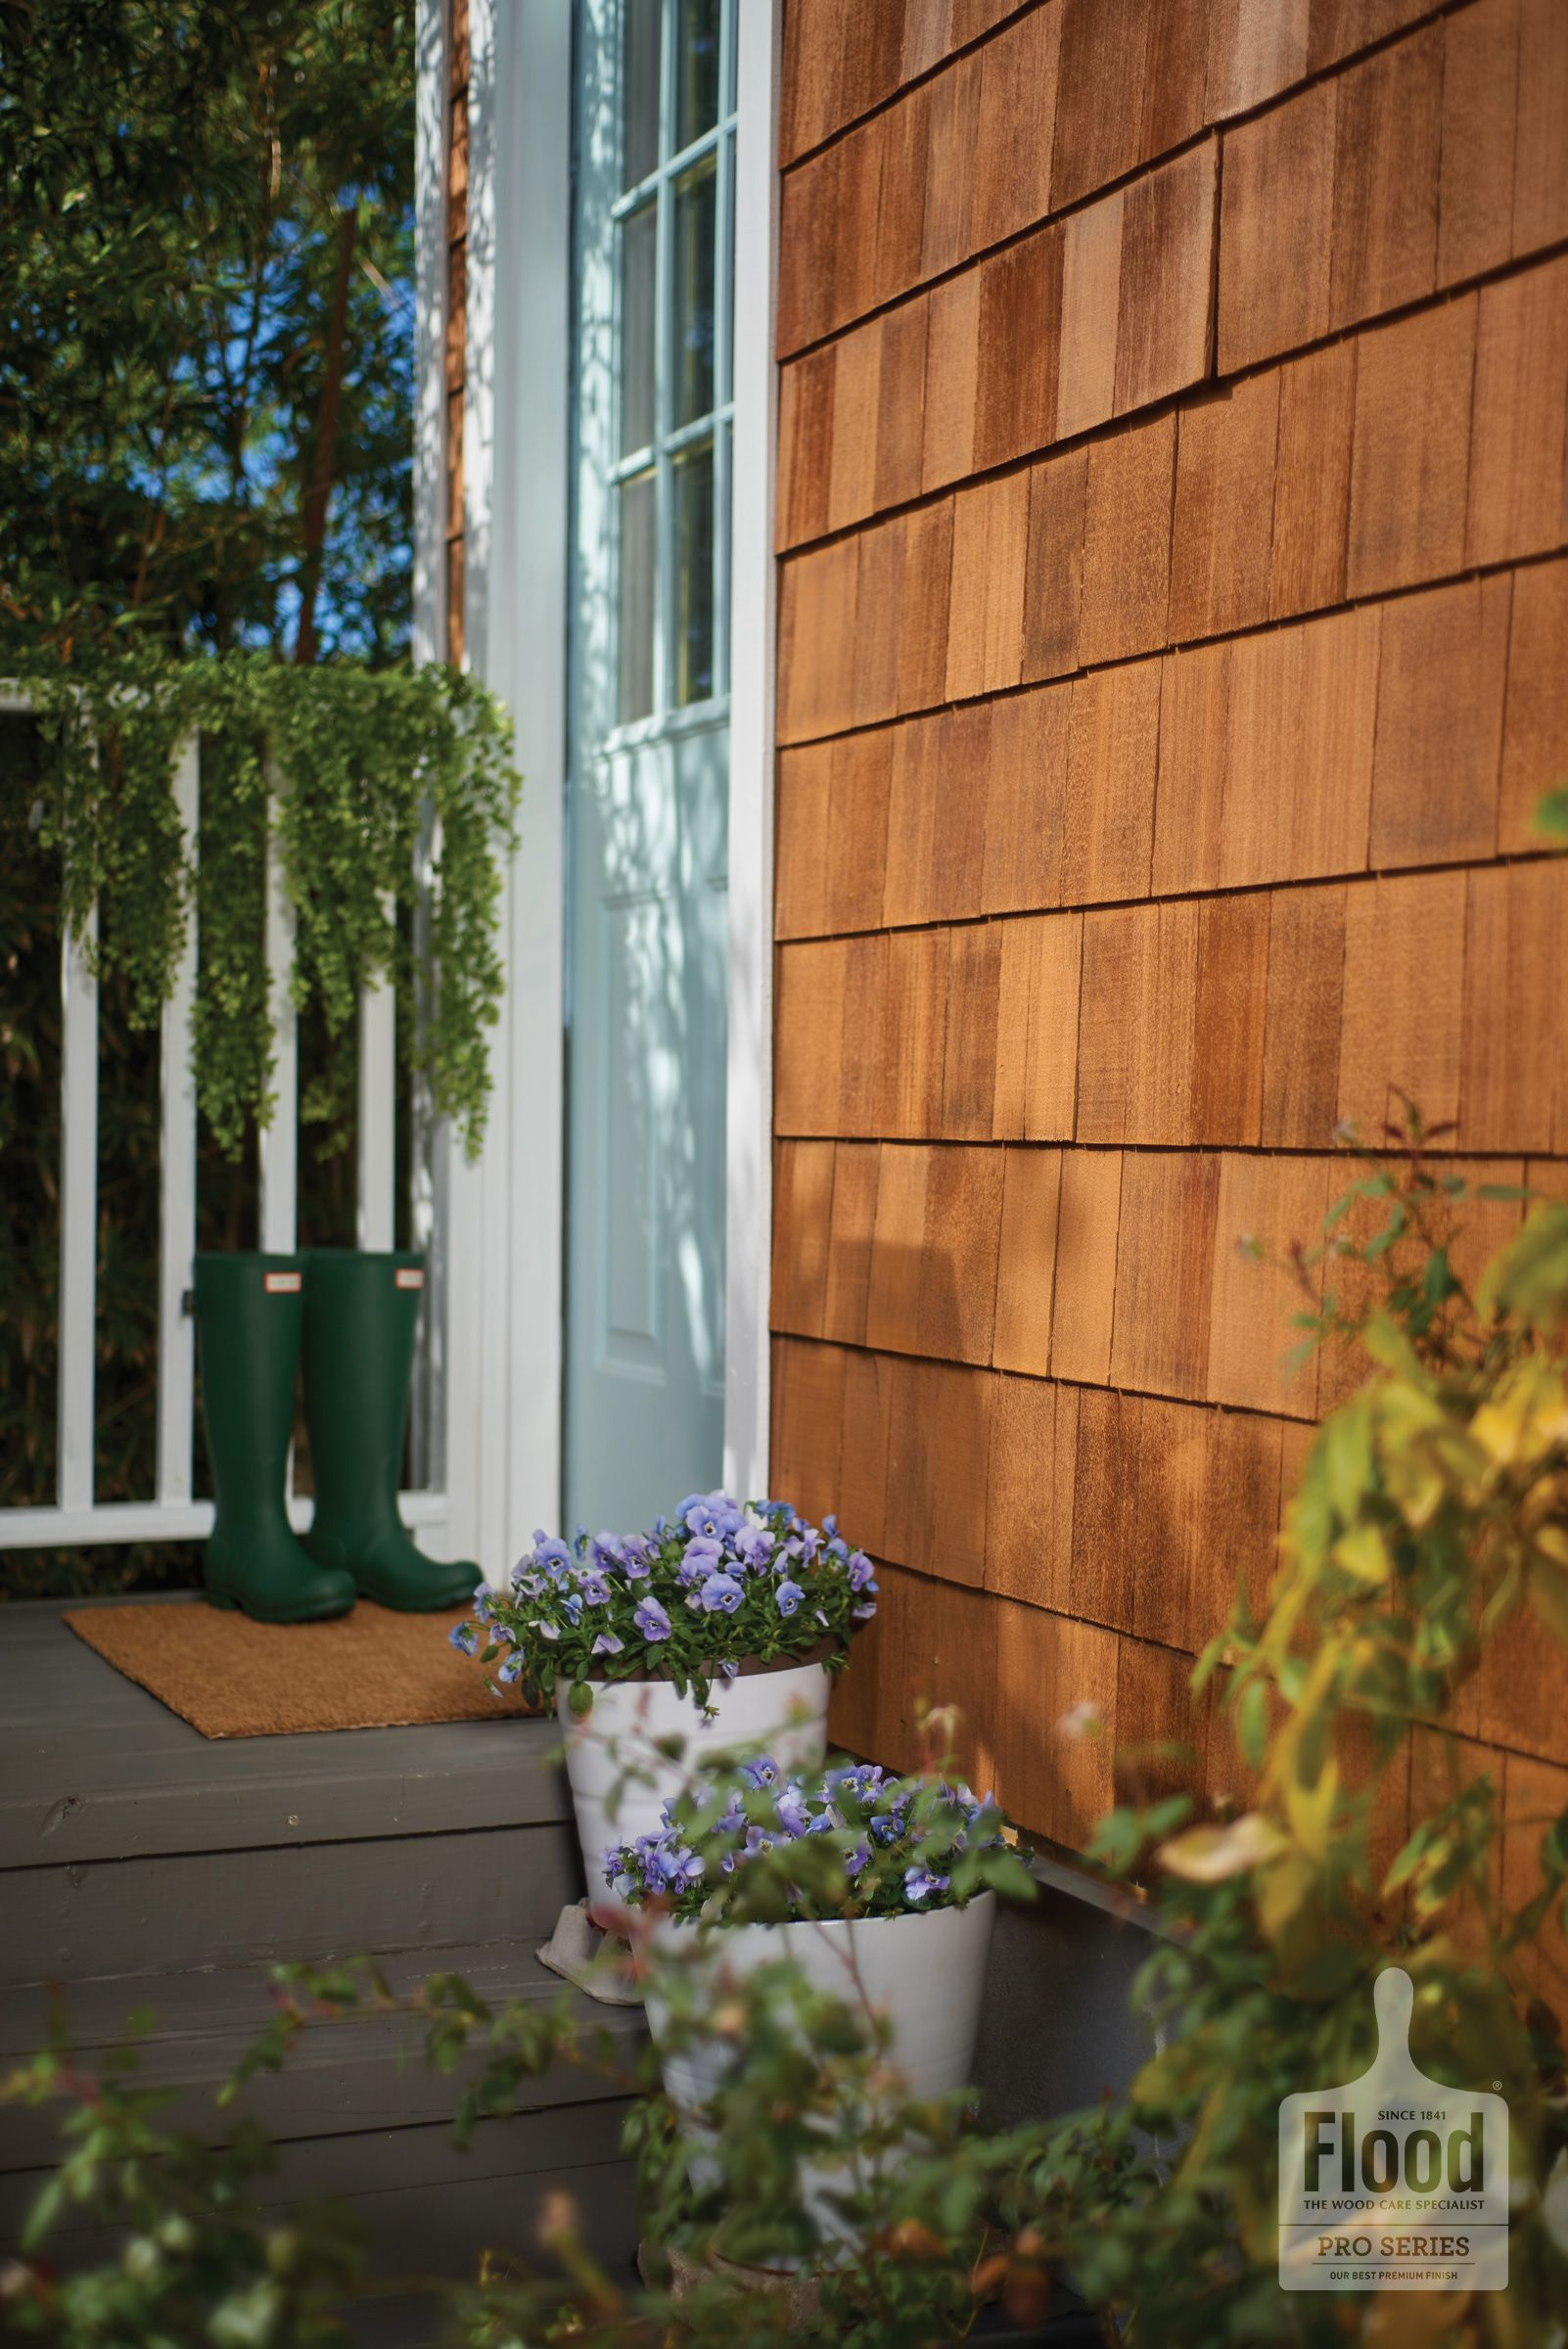 Flood Pro Series Cwf Uv 5 Wood Stain In Honey Gold Provides Translucent Protection That Lets The Wood Wood Siding Exterior Wood Shingle Siding Staining Wood